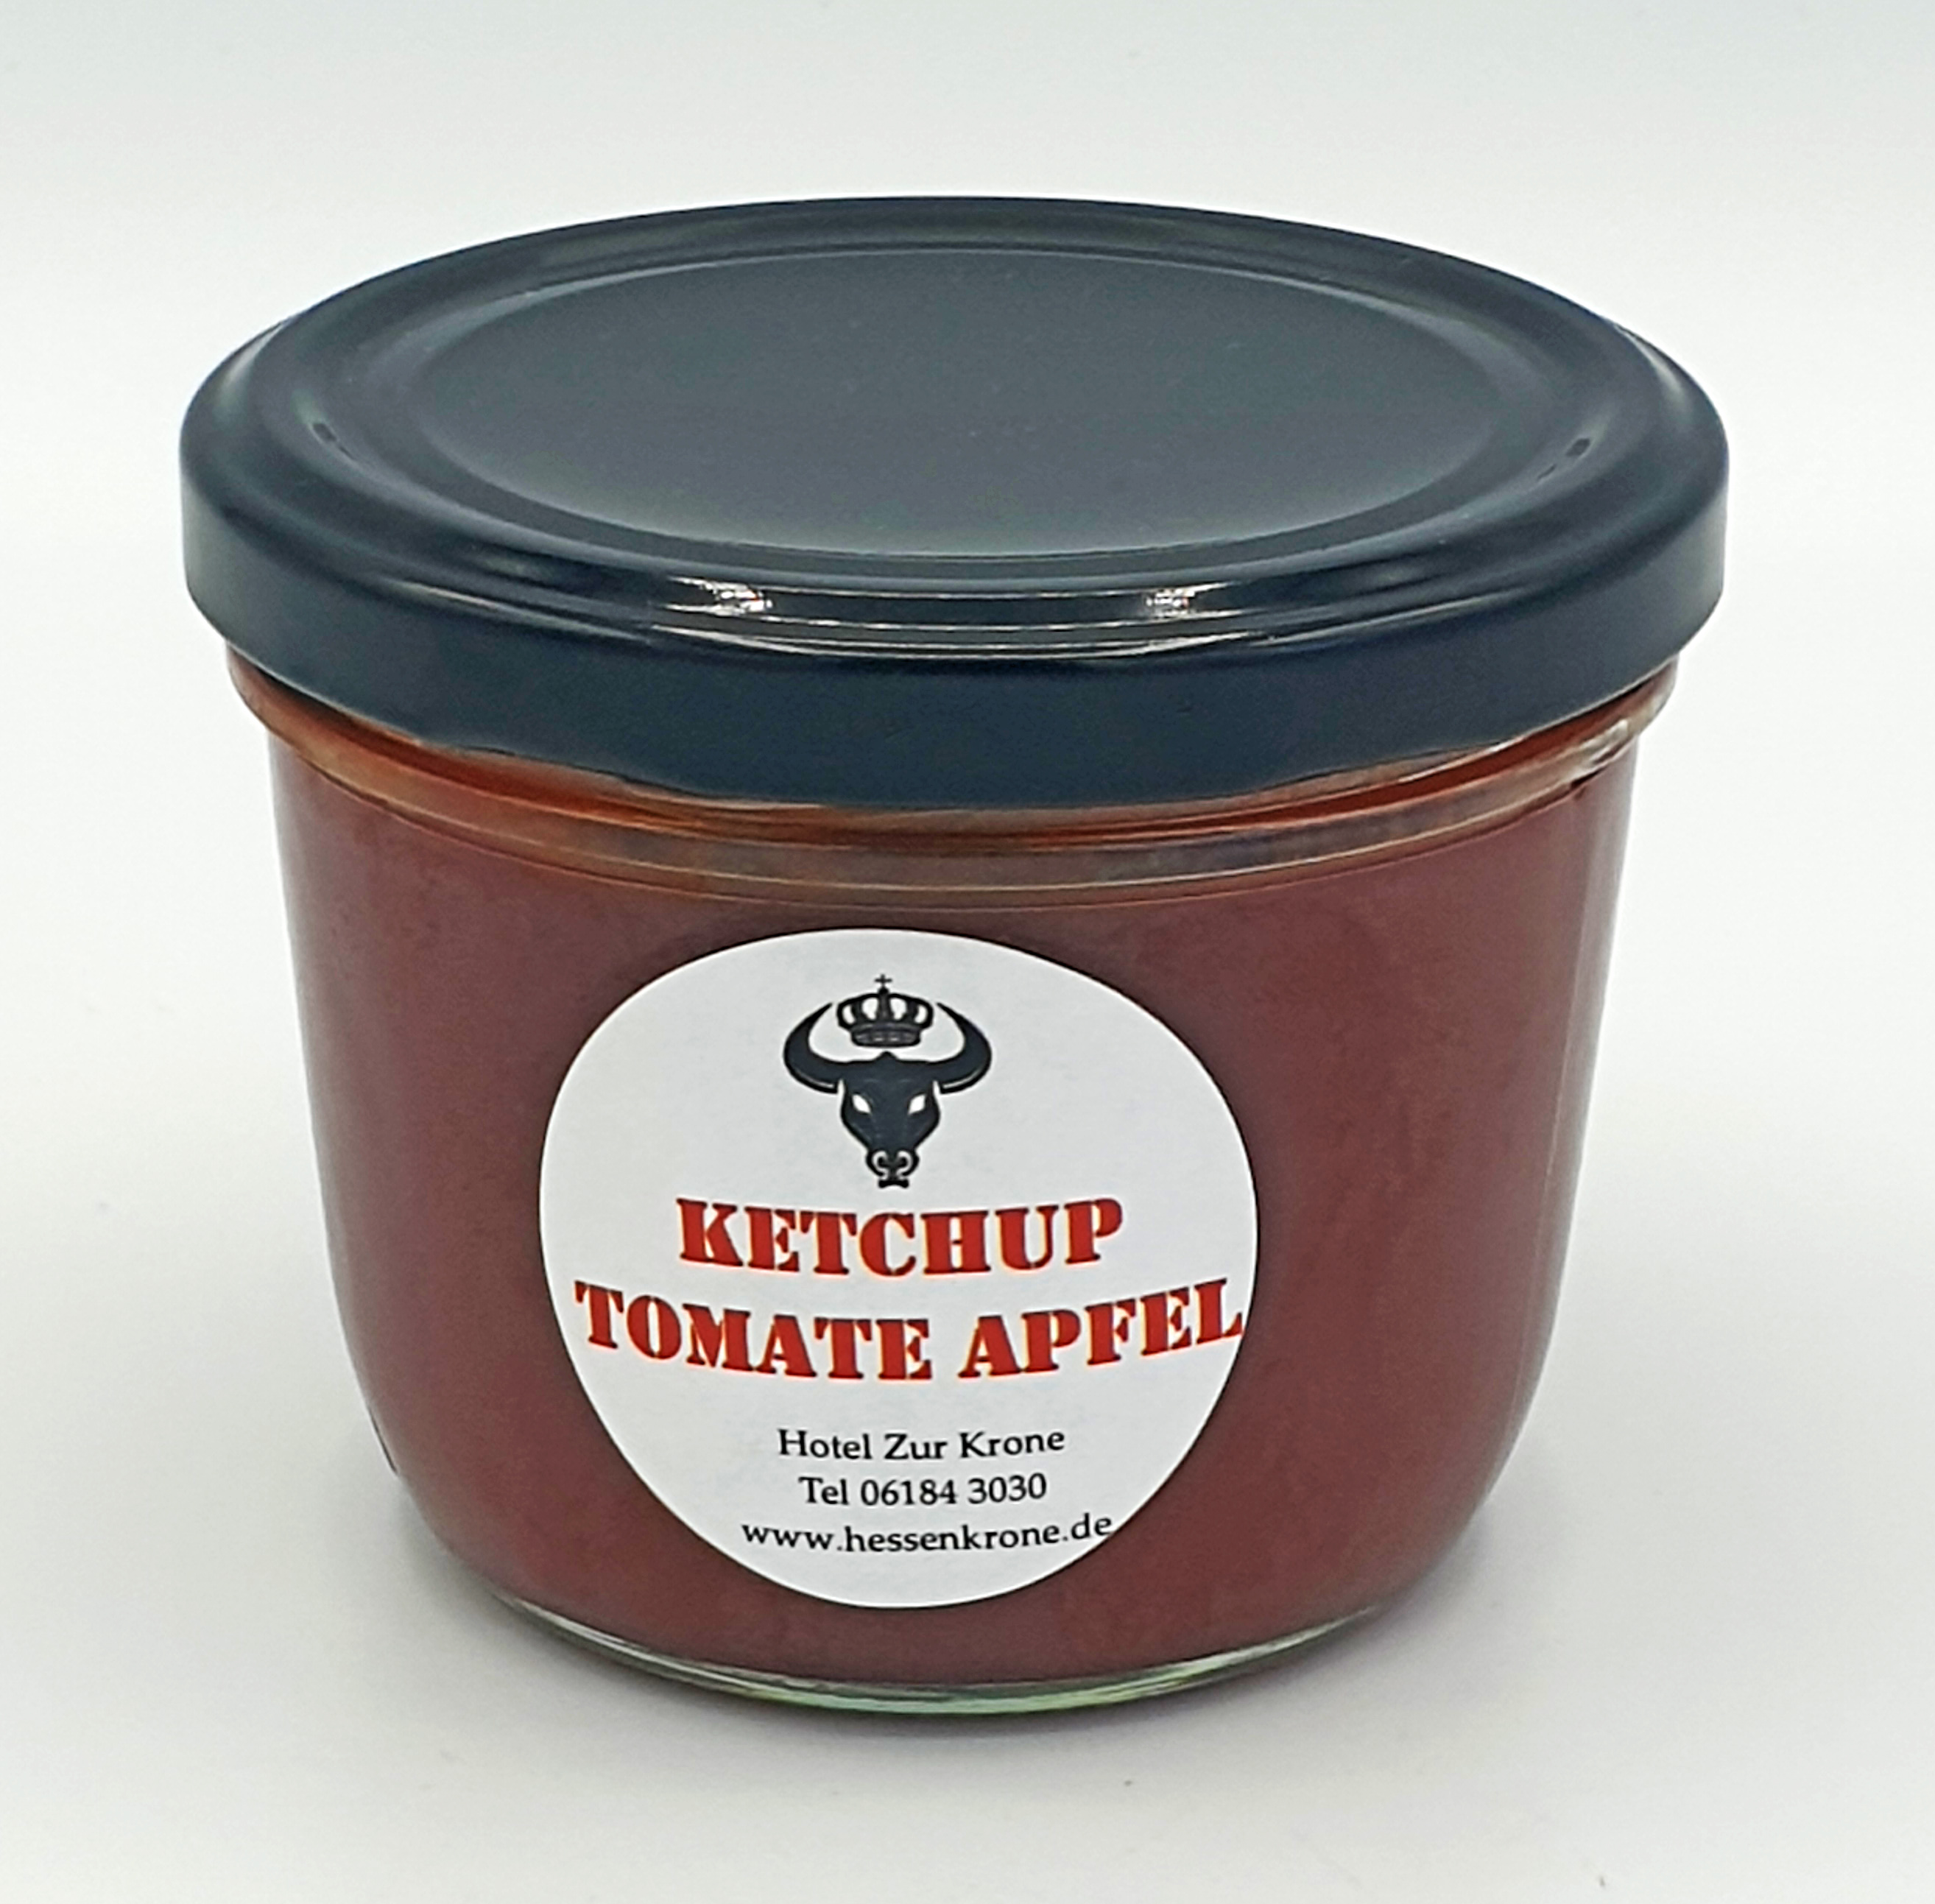 Barbecue Apfelketchup